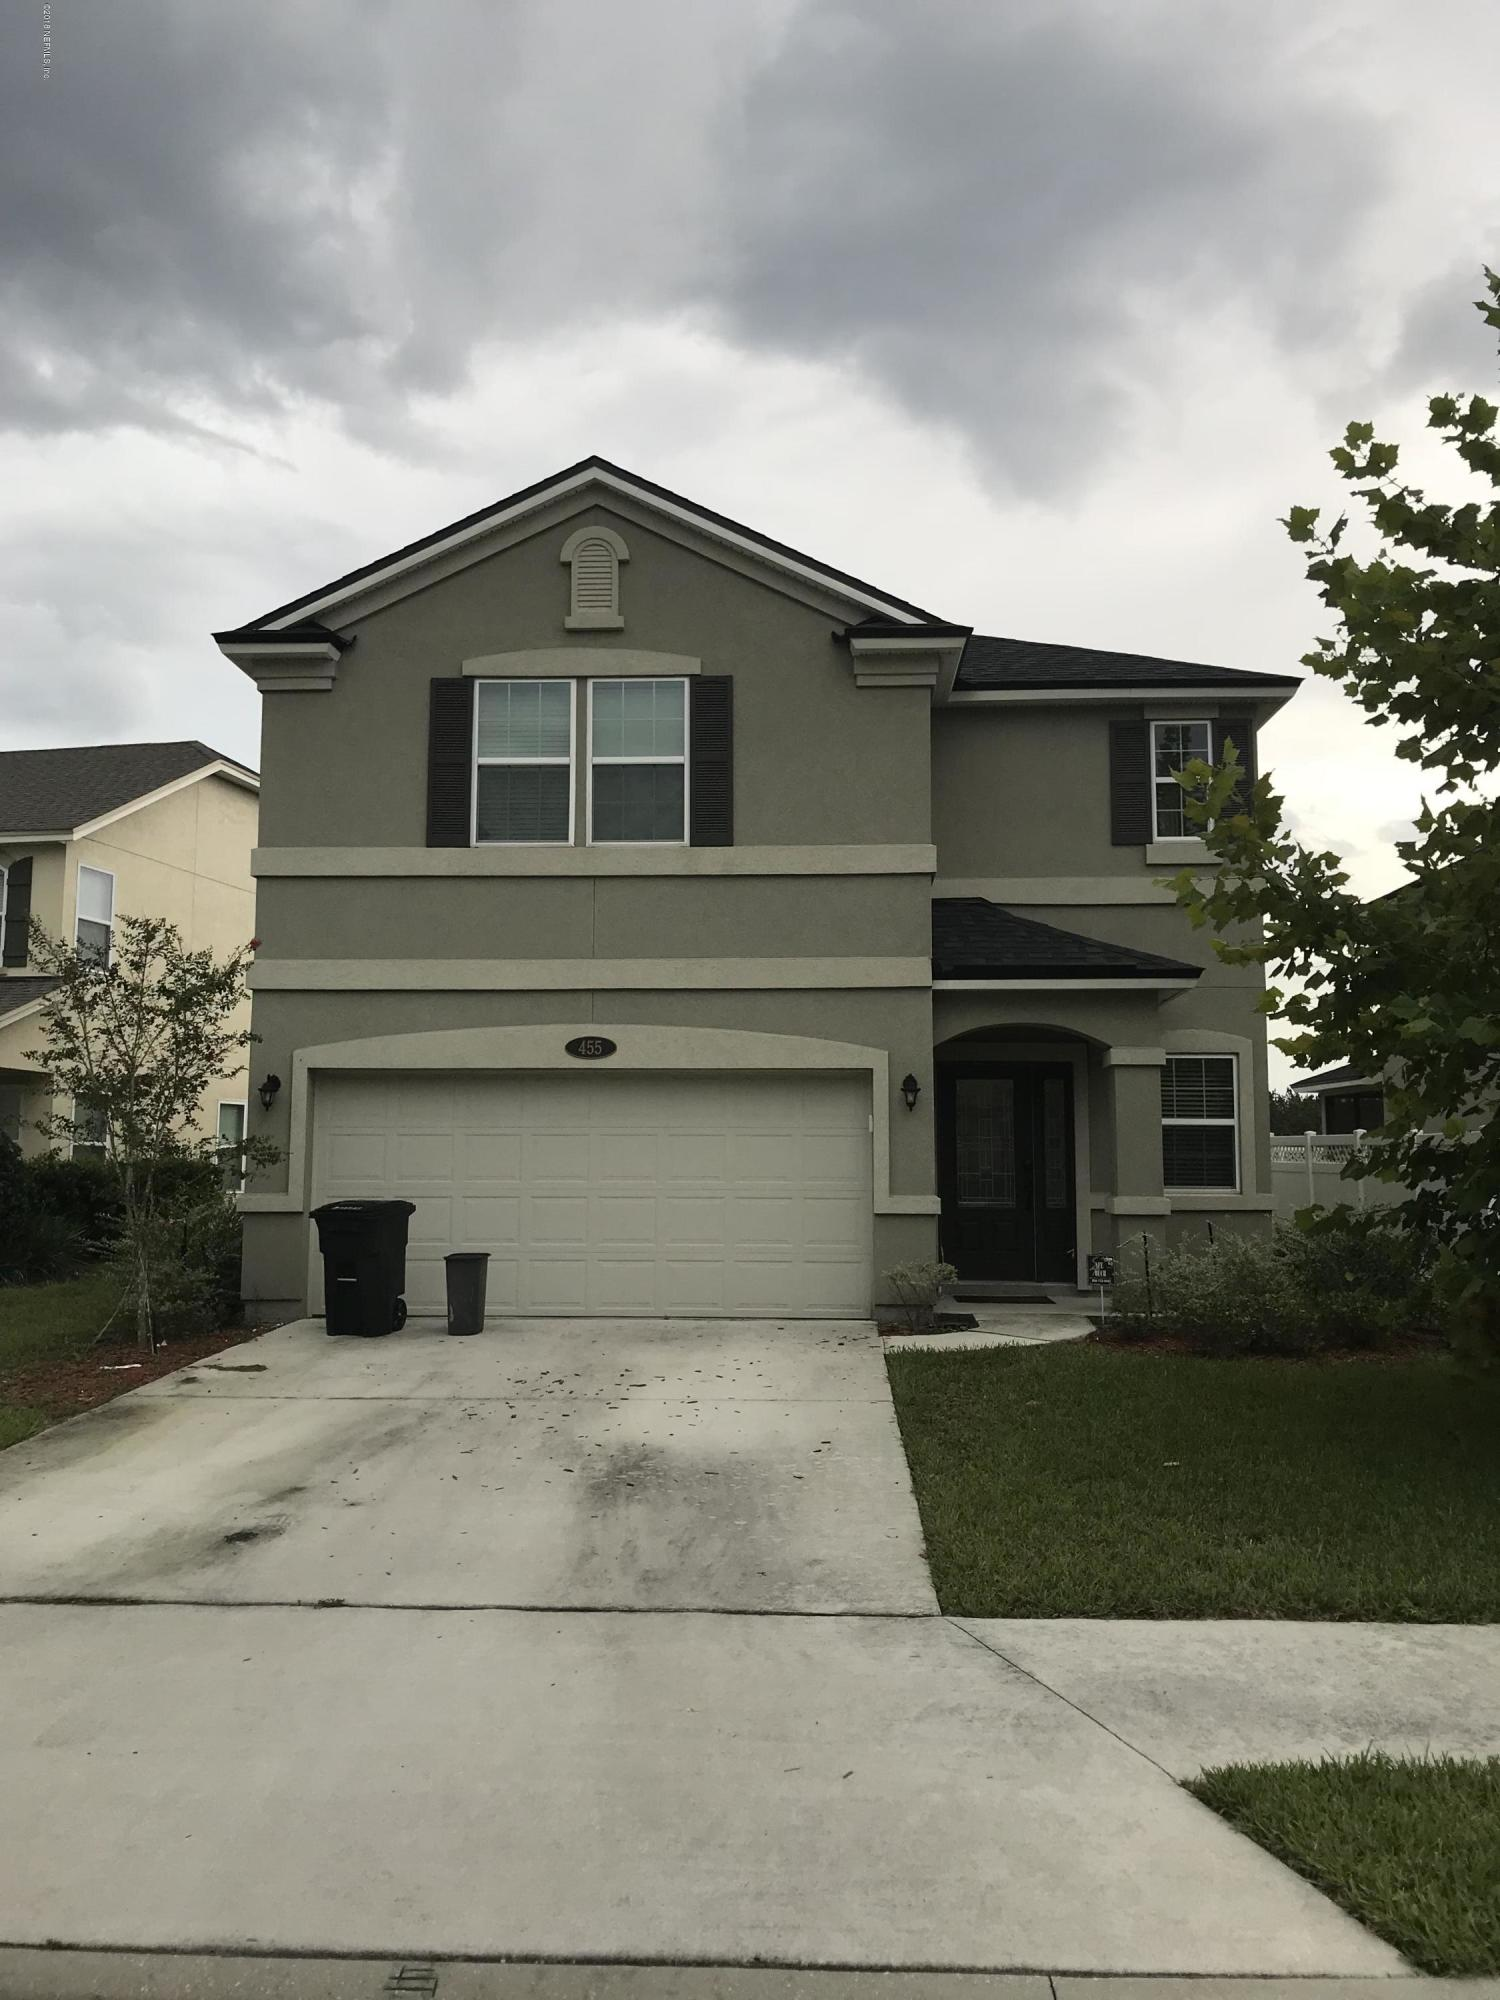 455 FOREST MEADOW, ORANGE PARK, FLORIDA 32065, 3 Bedrooms Bedrooms, ,2 BathroomsBathrooms,Residential - single family,For sale,FOREST MEADOW,952979